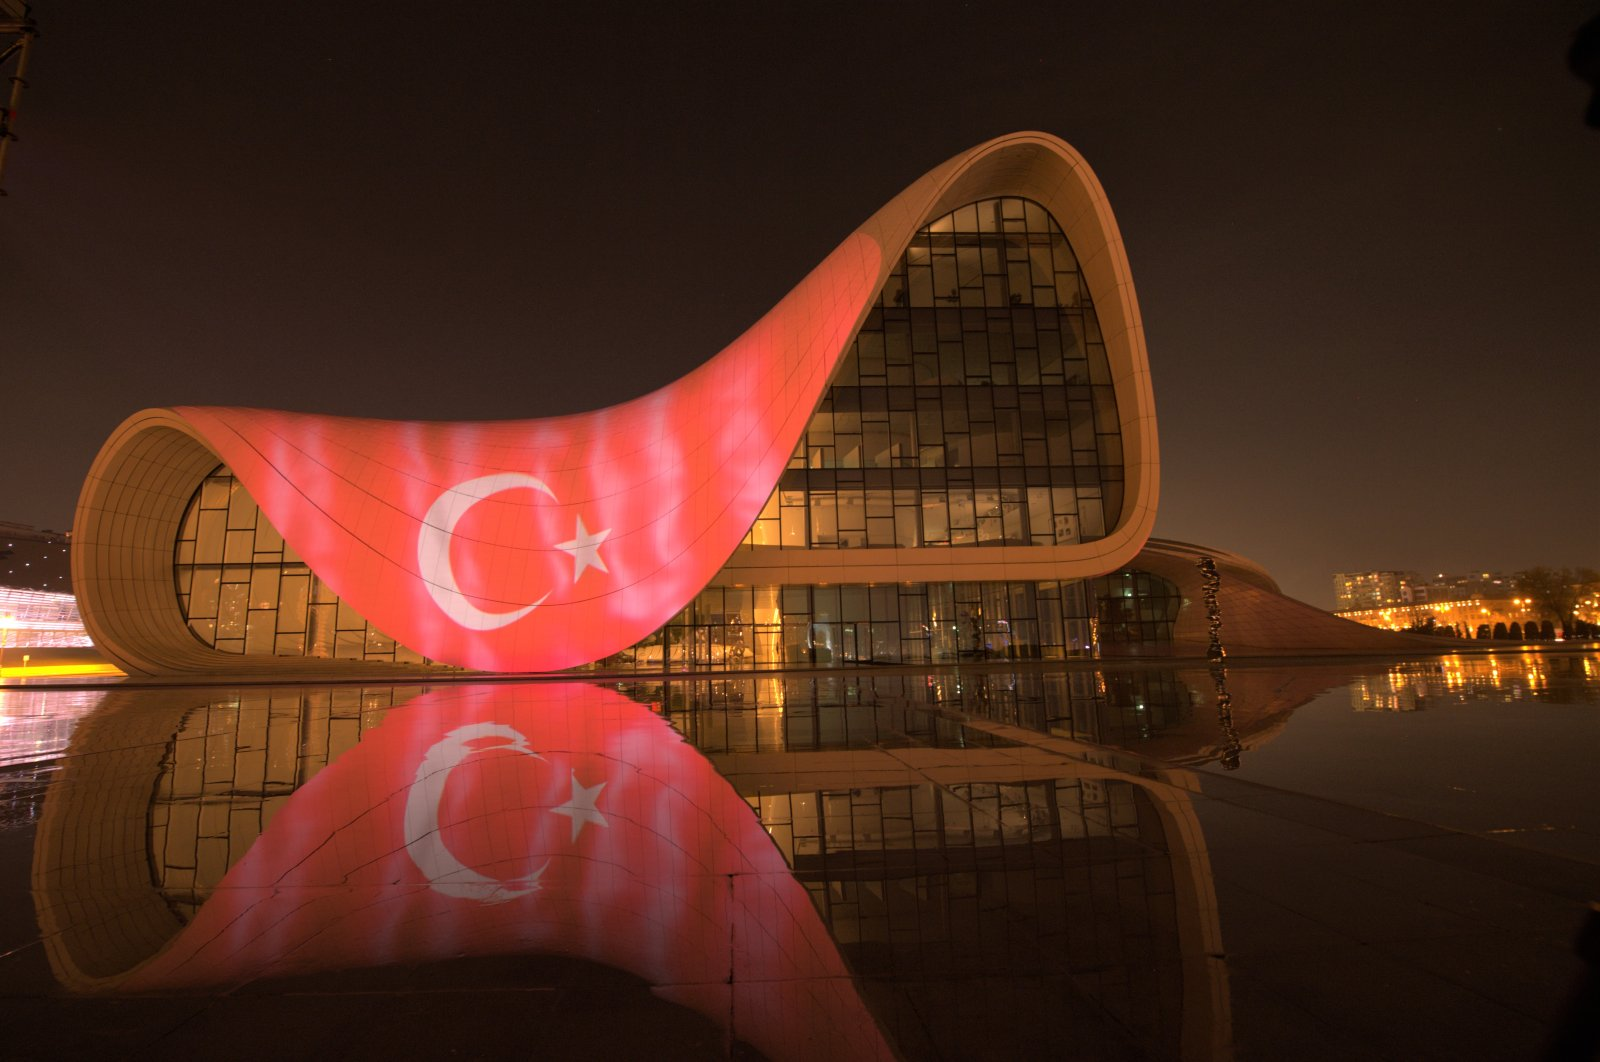 Turkey and Azerbaijan lit up iconic buildings in Ankara and Baku, their respective capitals, with both countries' flags, honoring their cooperation against the COVID-19 outbreak, Saturday, April 11, 2020. (AA)